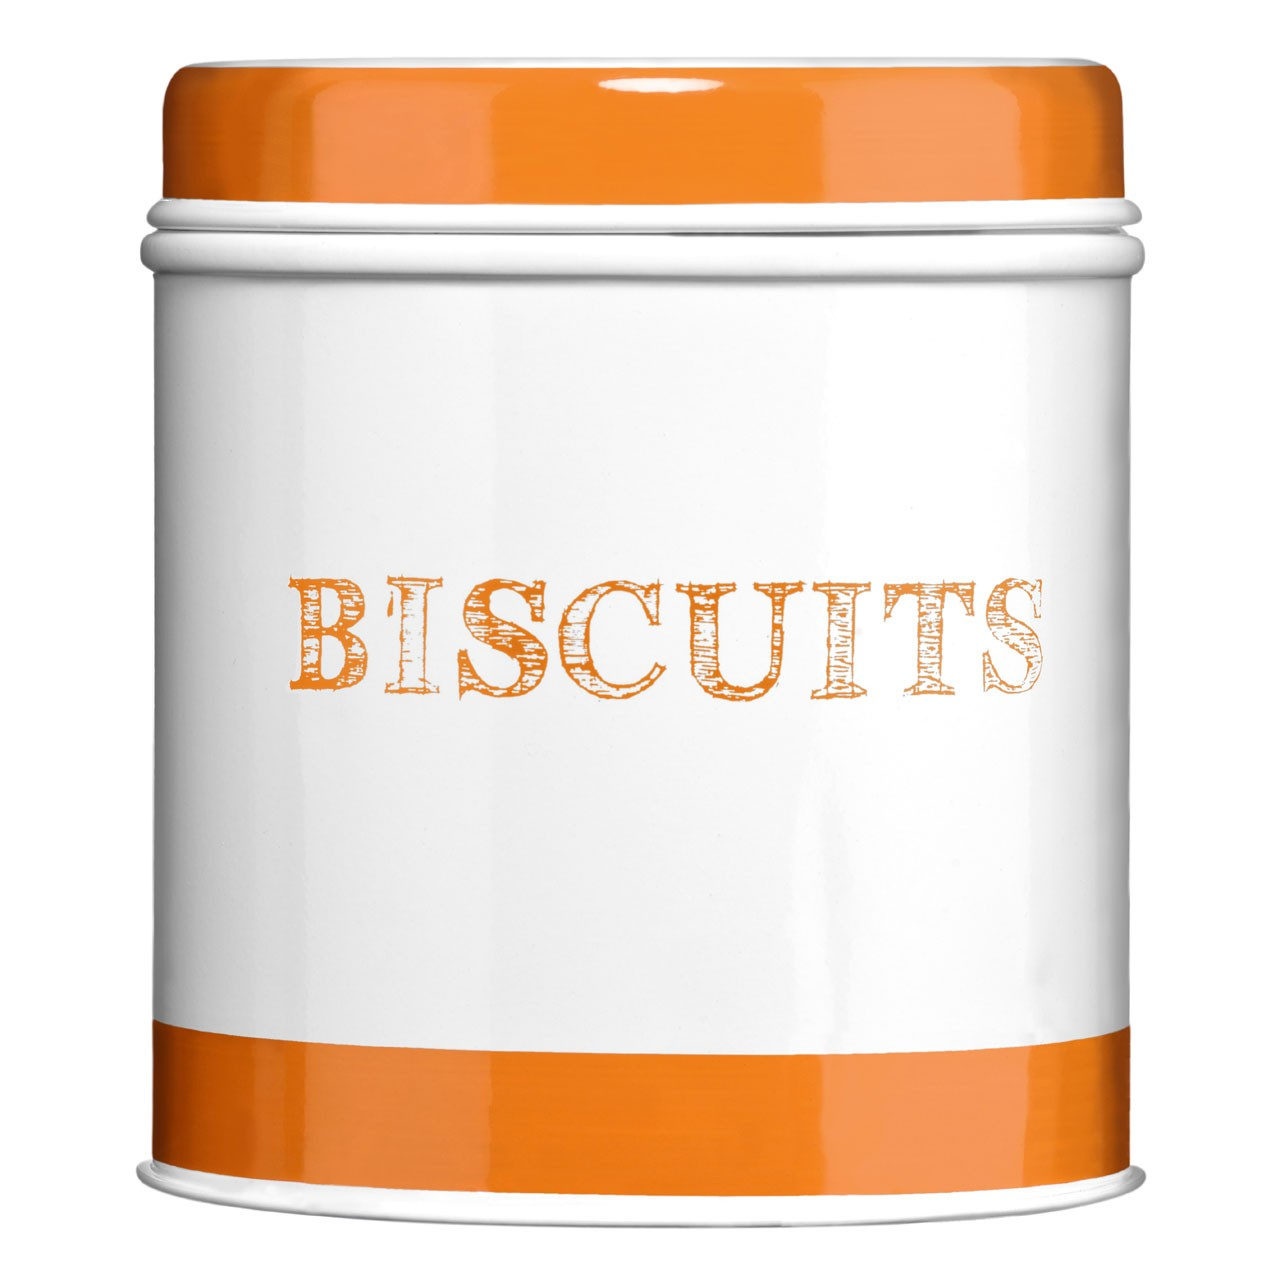 Band Biscuit Canister - Orange